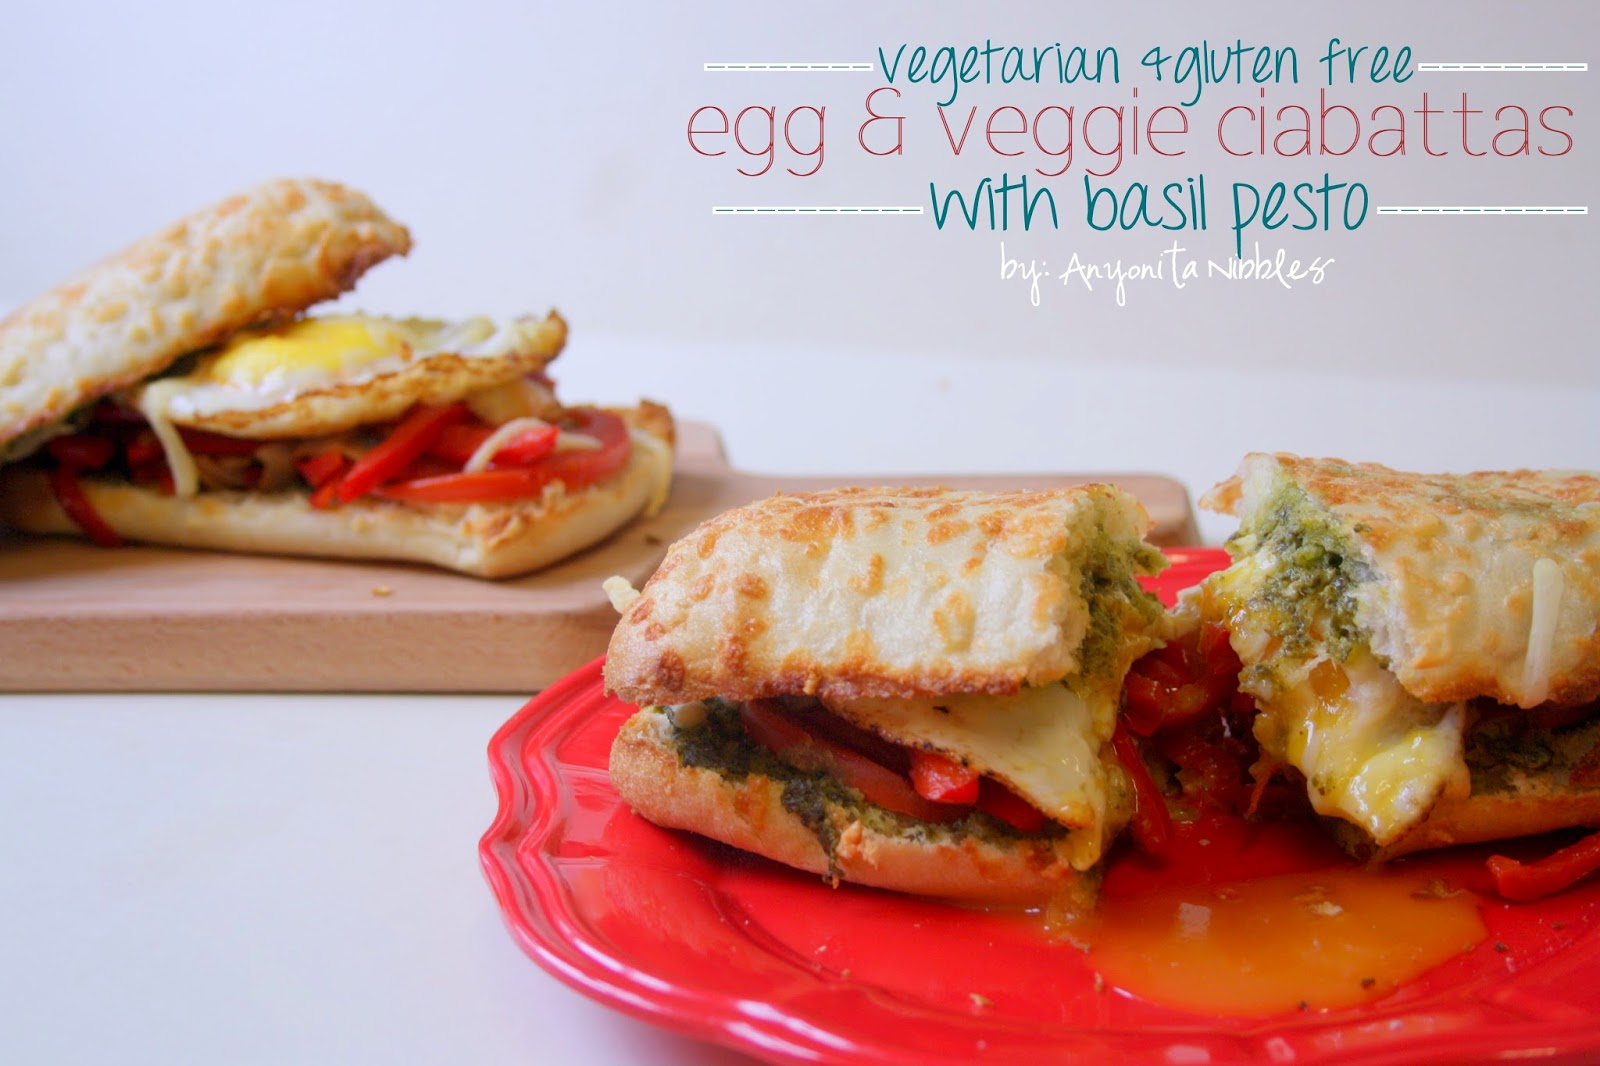 This is how celiacs do convenience food: 10 minute vegetable and egg ciabatta sandwiche